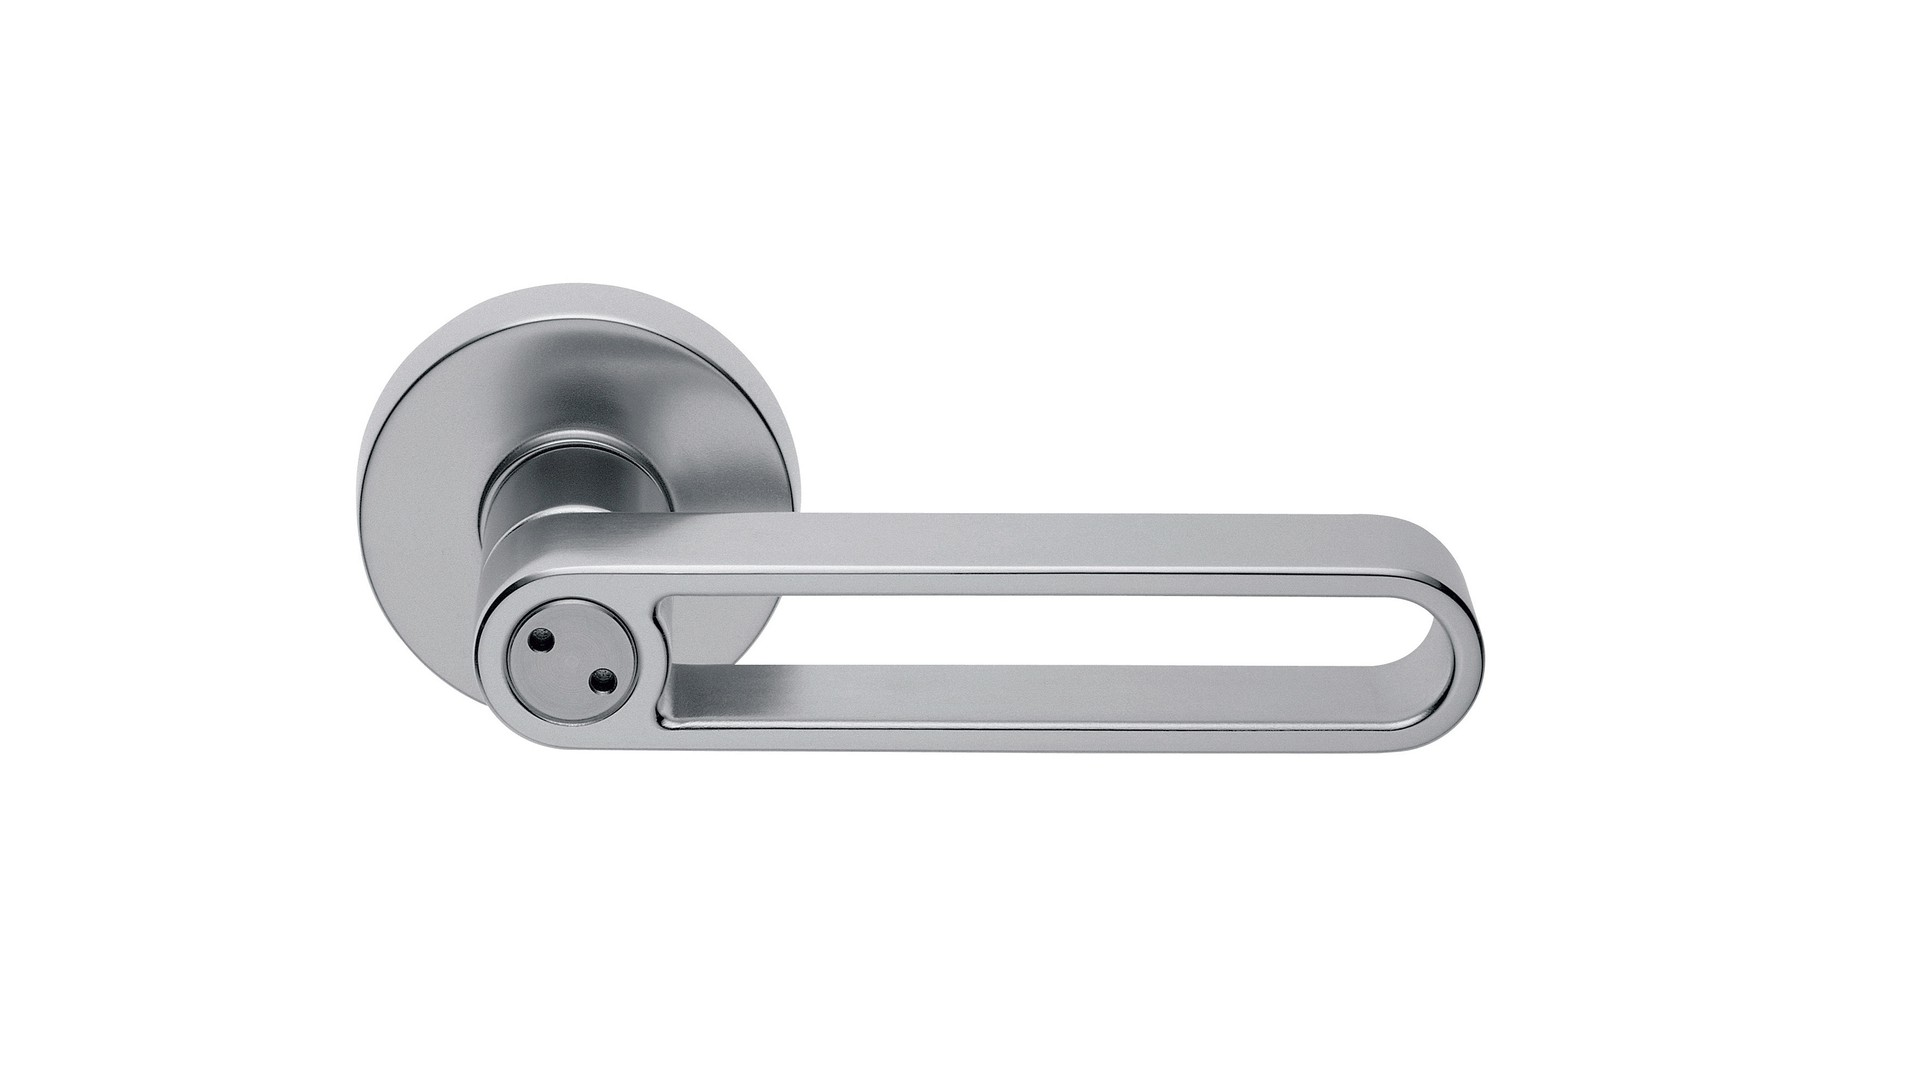 door handles. door handle handles  sc 1 st  Prashanti & Door Handles. Door Handle Handles - Prashanti.co